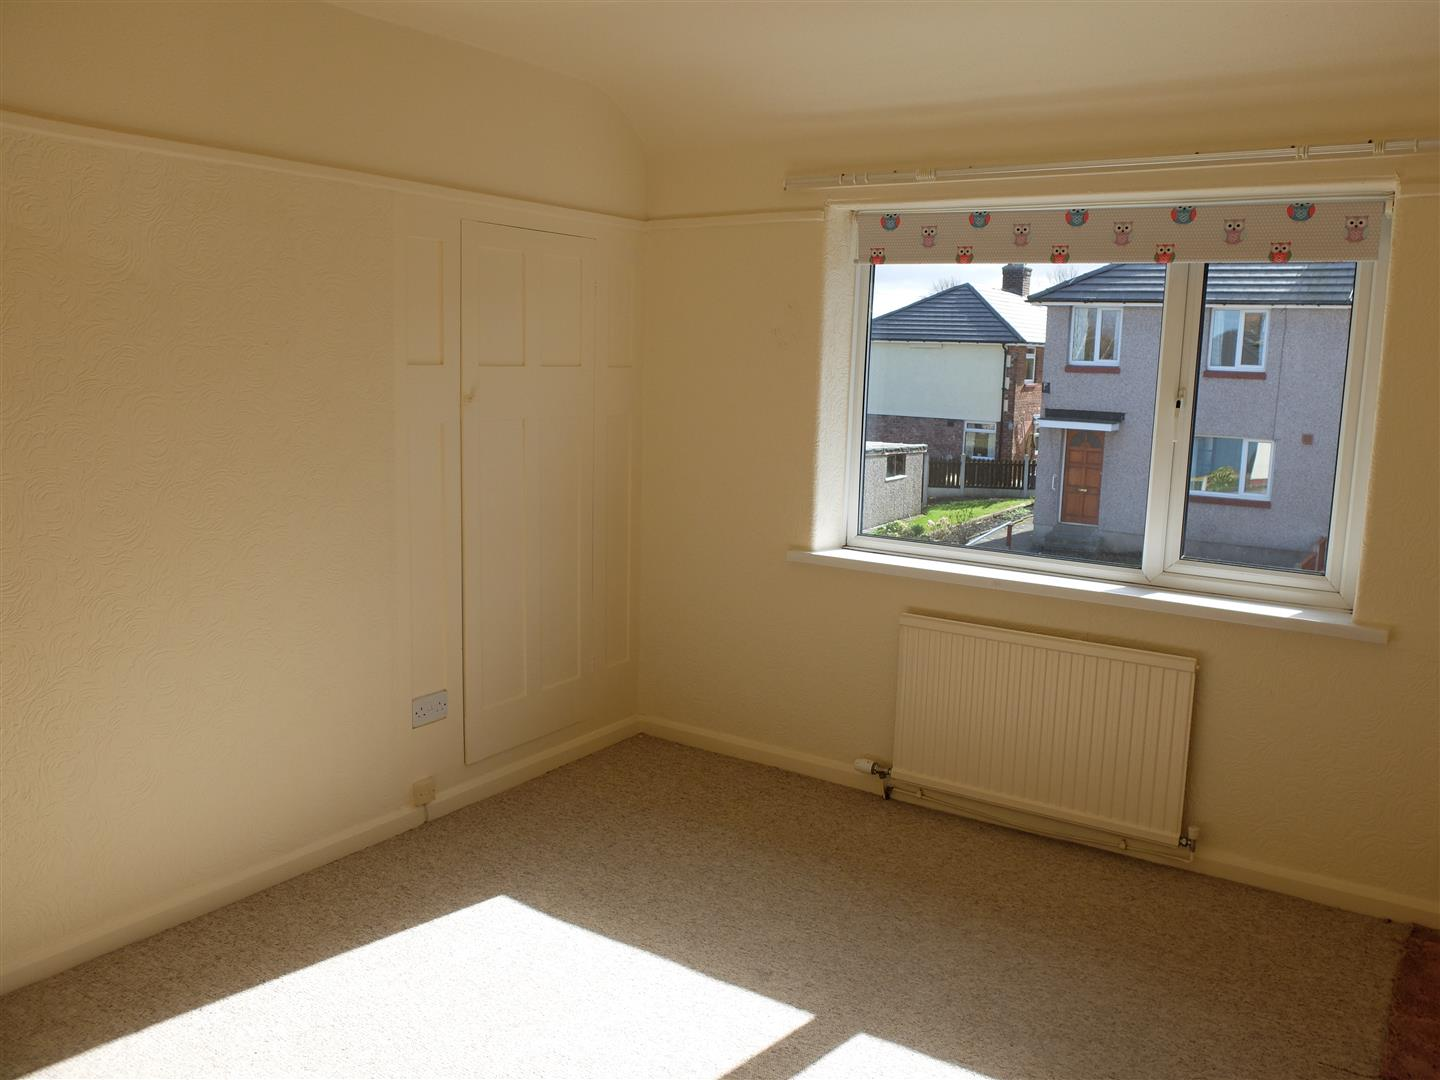 3 Bedrooms House - Semi-Detached For Sale 2 Waldegrave Road Carlisle 95,000